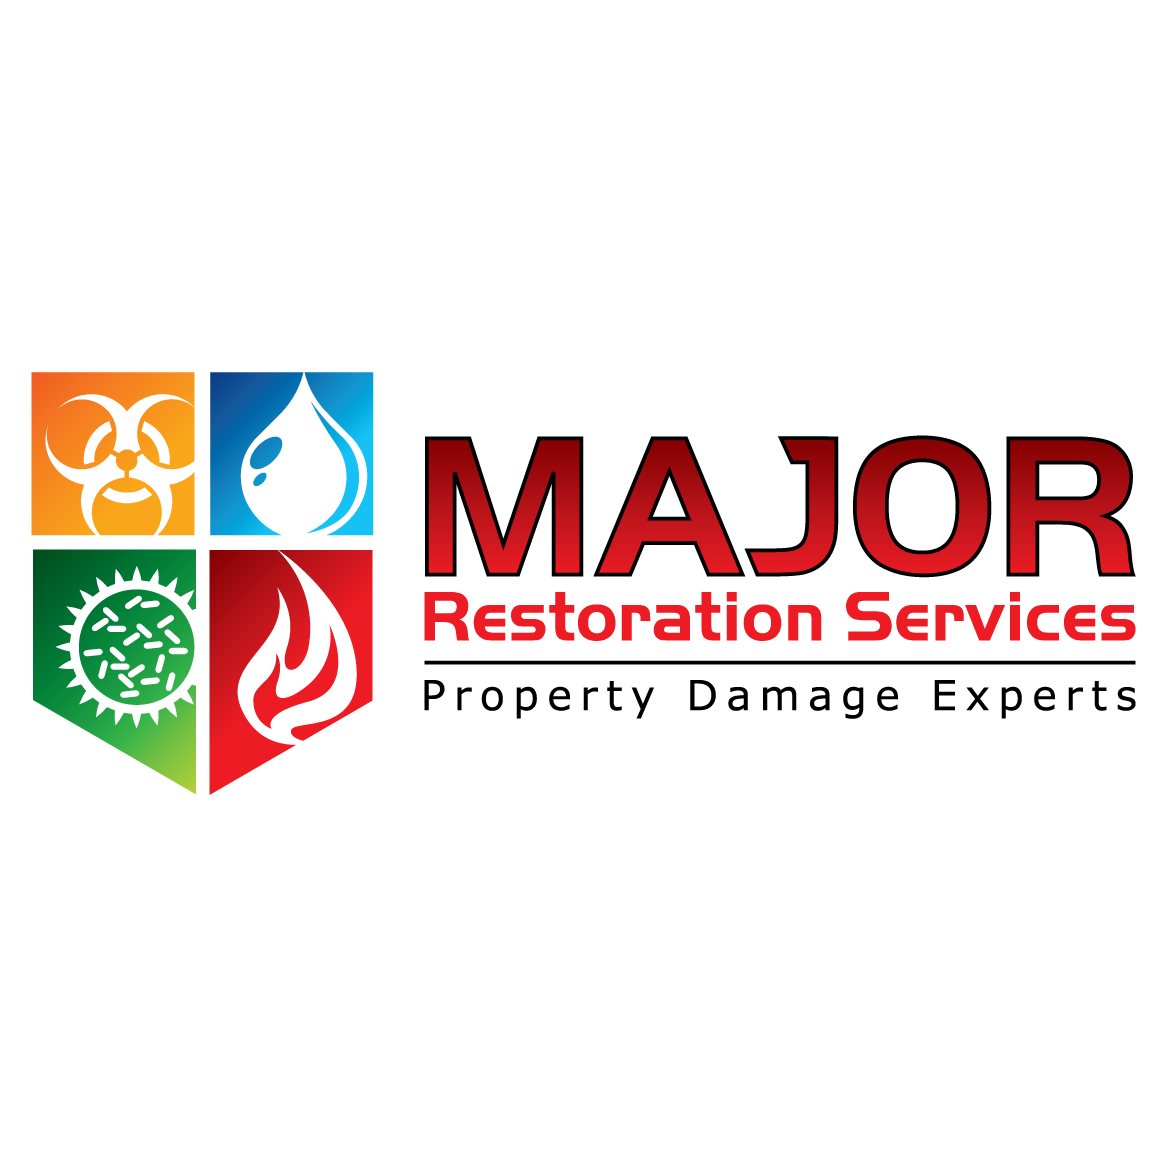 Major Restoration Services image 4